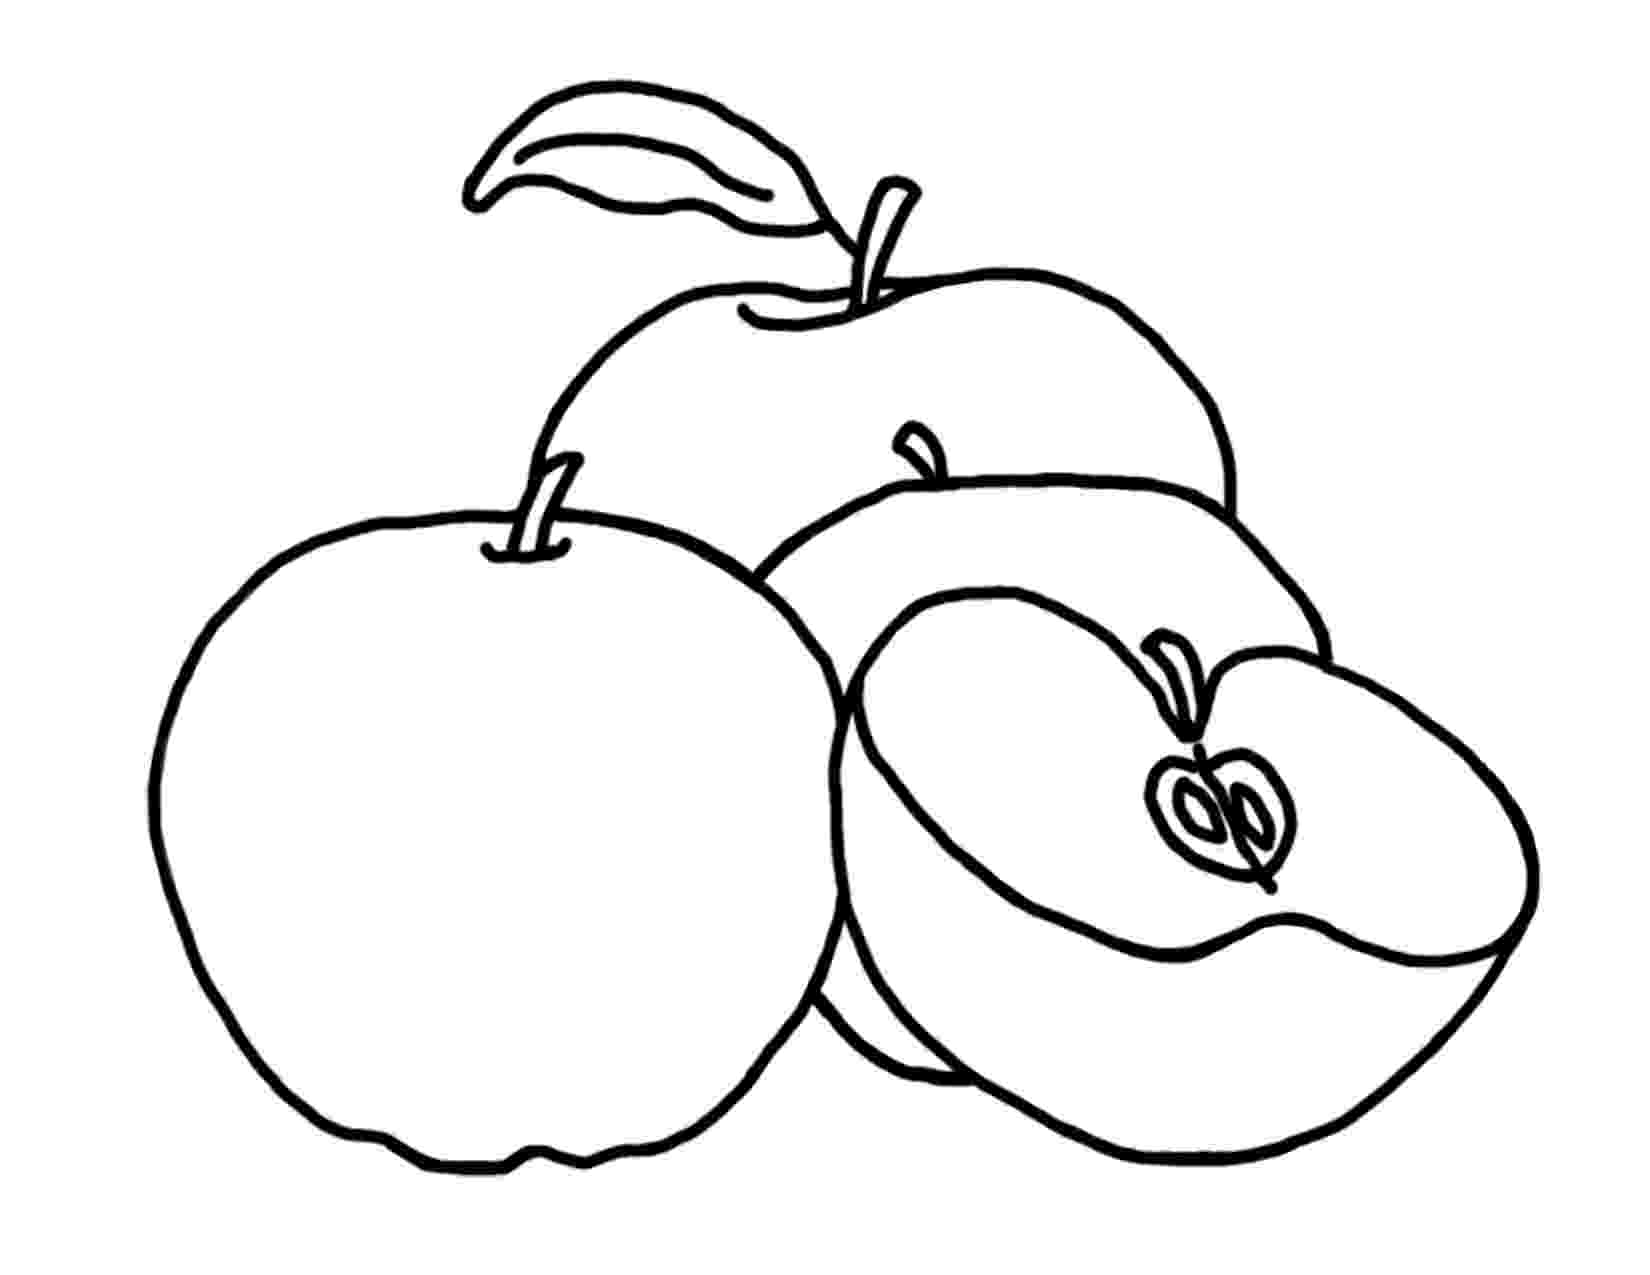 apple picture for kids fruits drawing for kids free download on clipartmag picture for kids apple